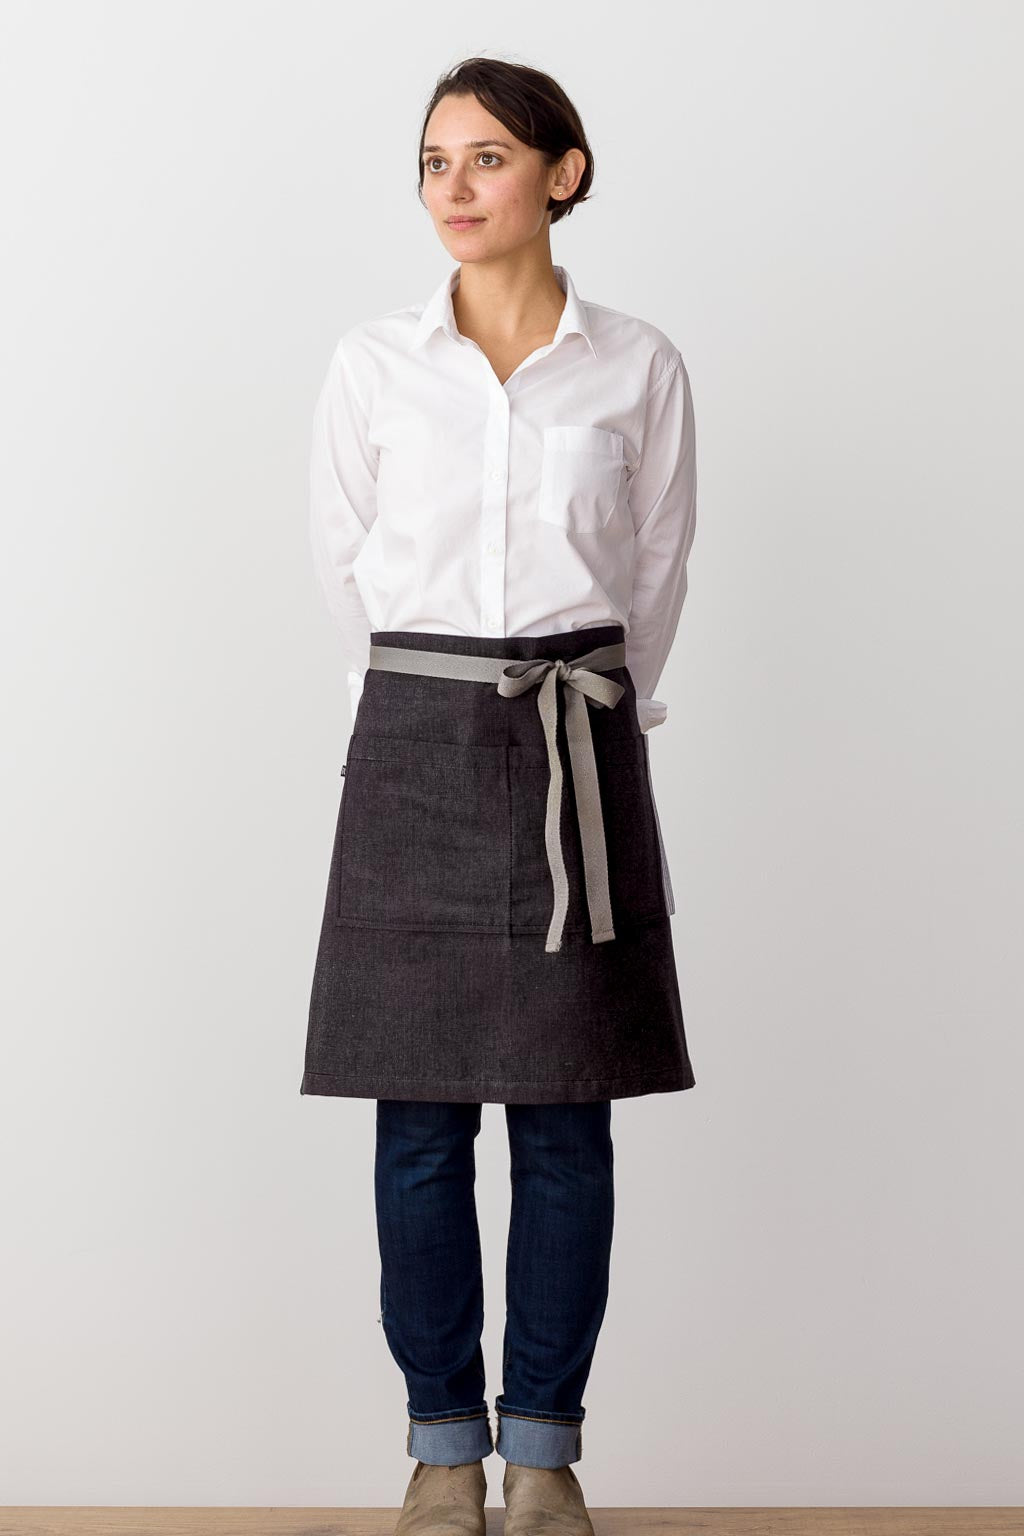 Bistro Middly Apron, Charcoal Black with Tan Straps, for Men and Women